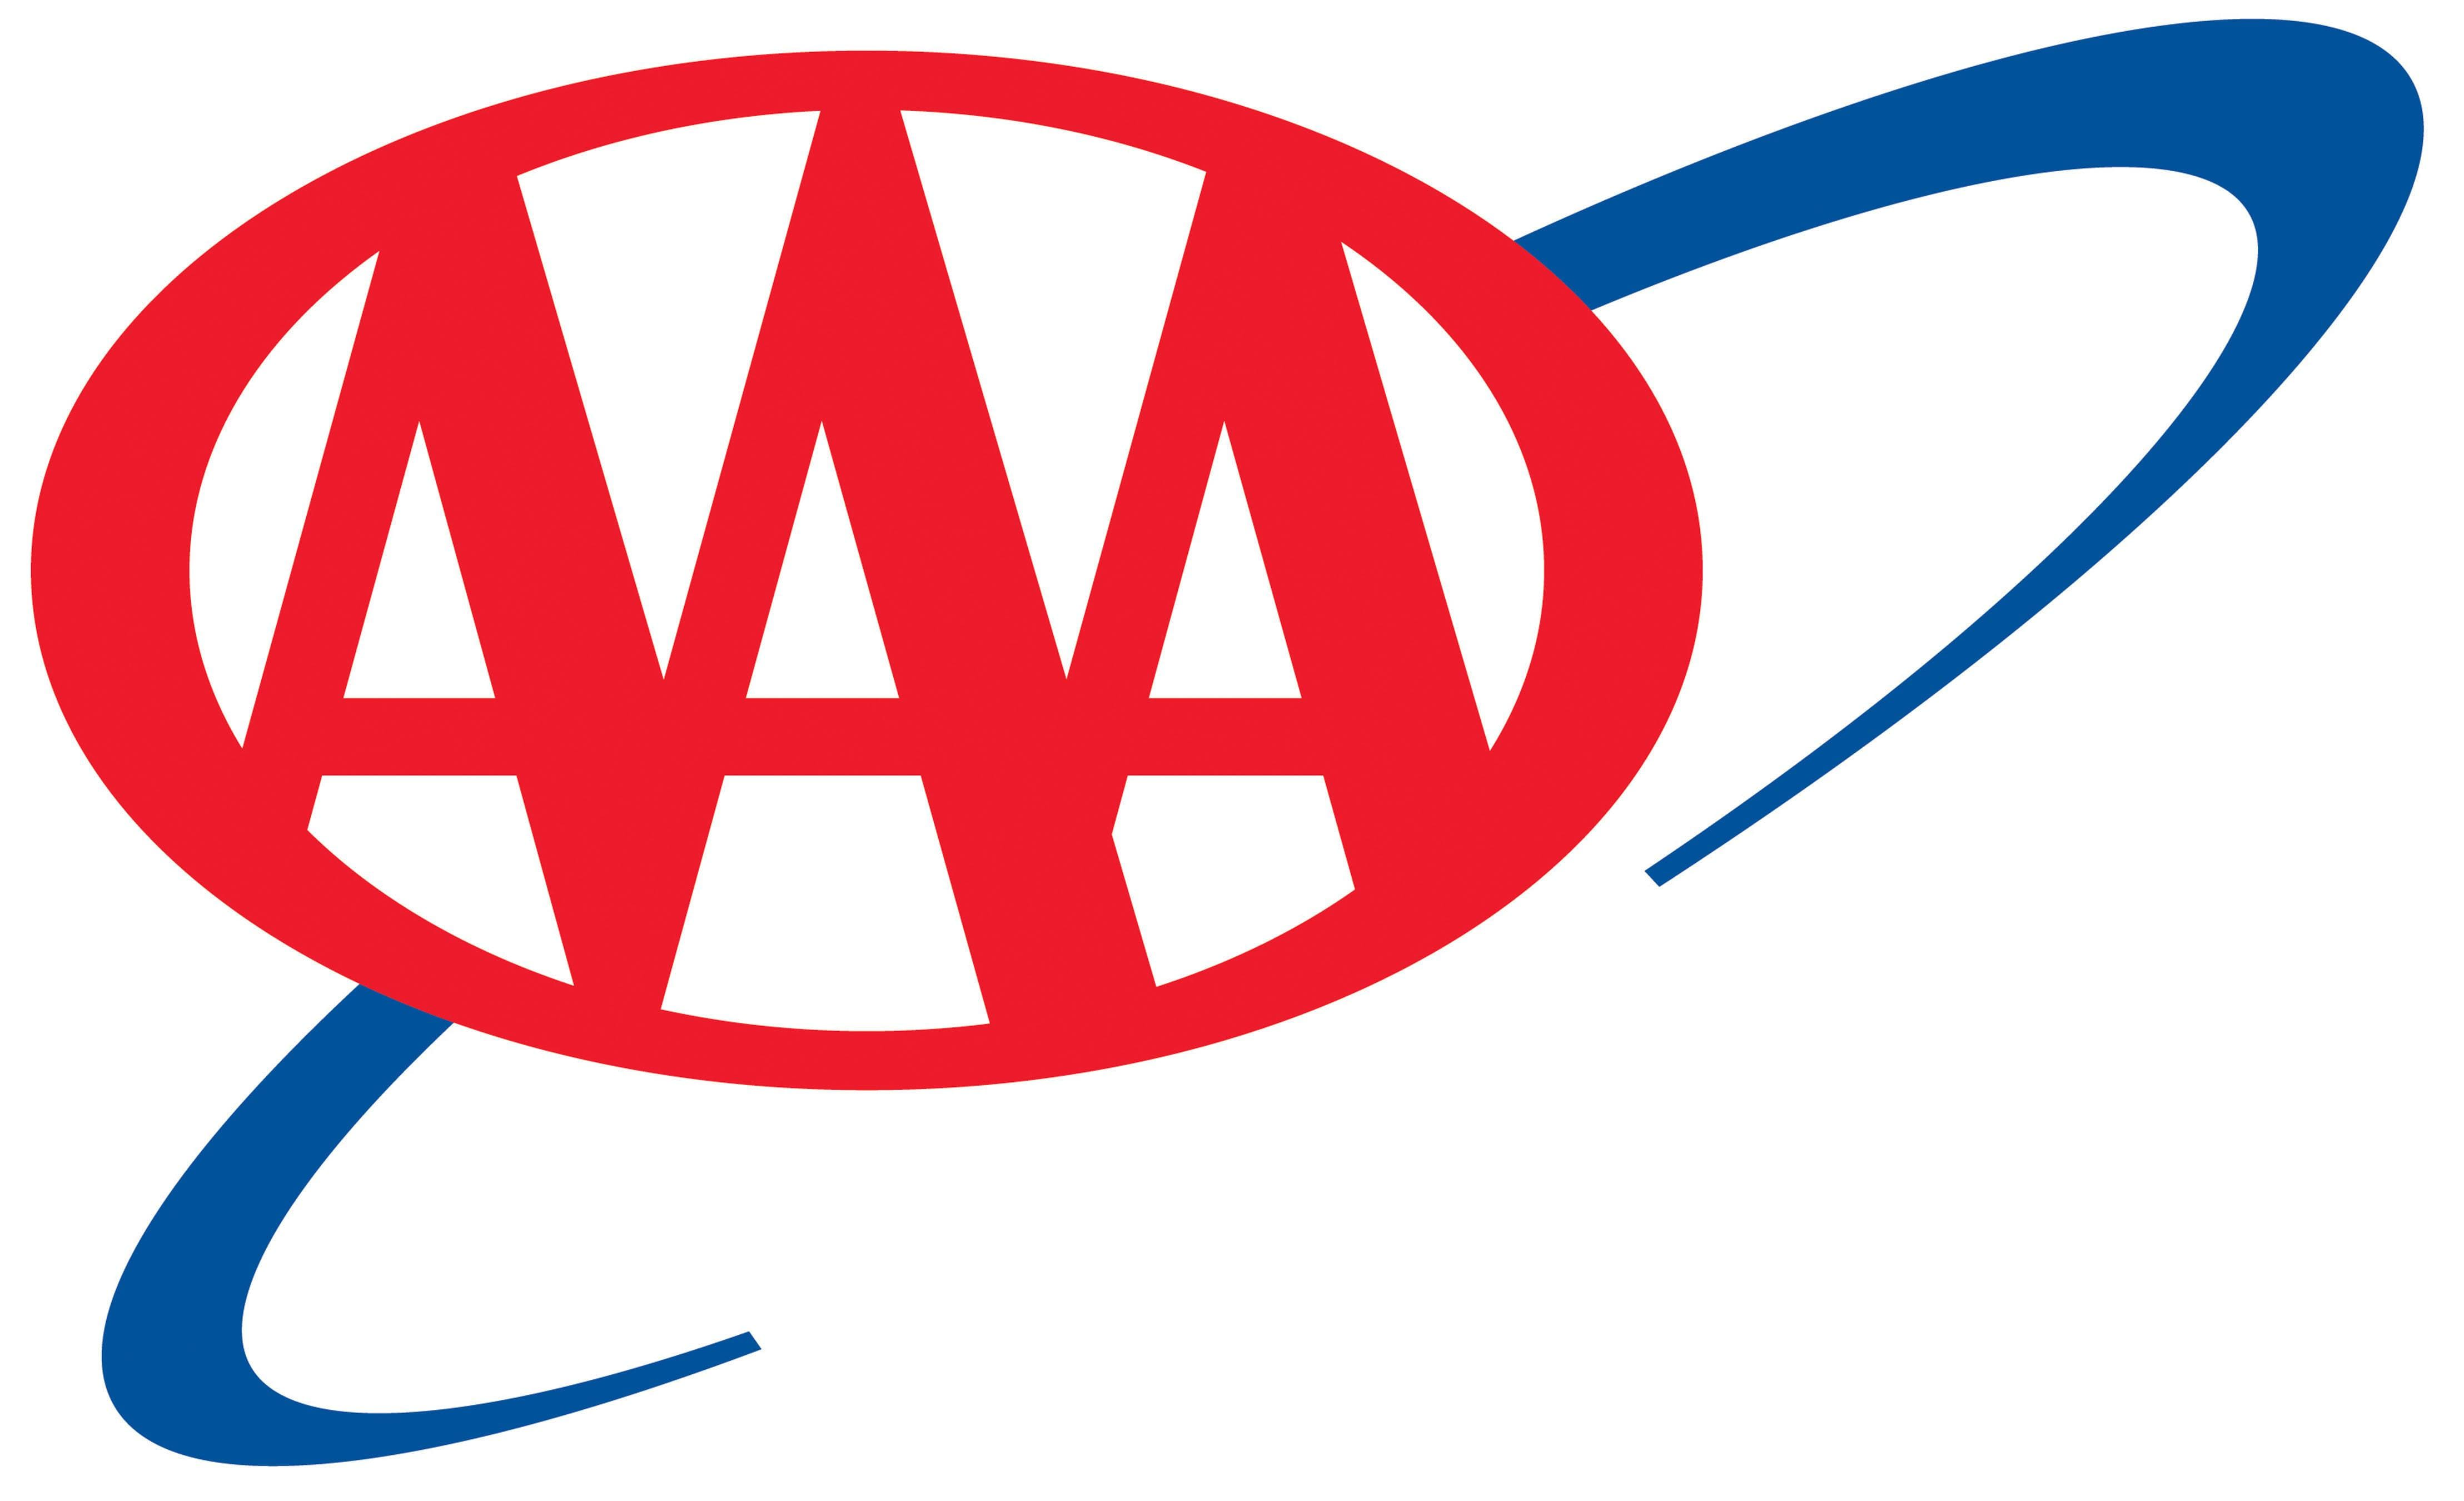 AAA: Colonial Pipeline Shut Down Having An Impact On Gasoline Prices